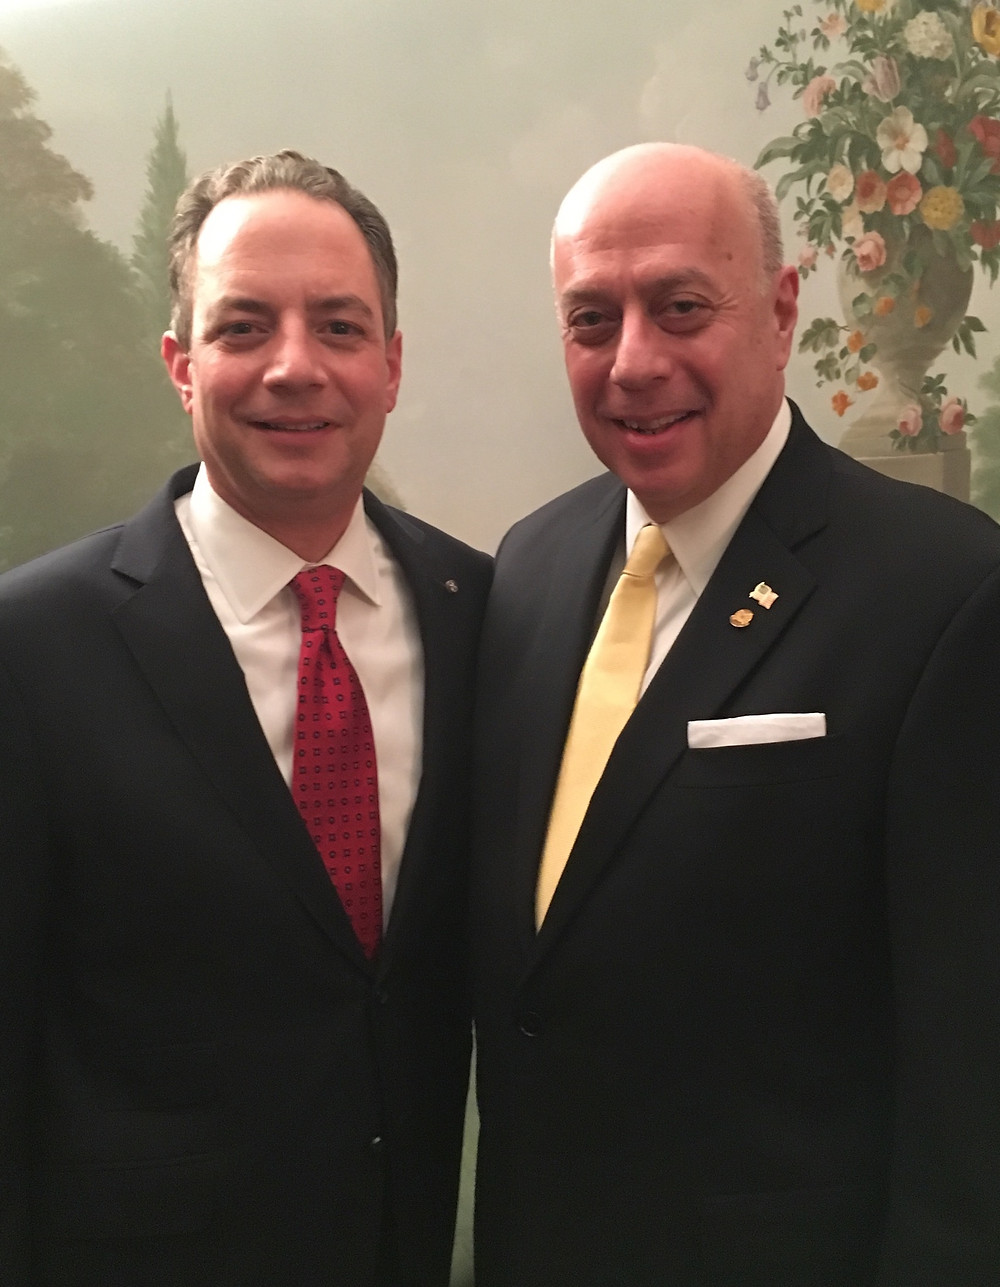 SP Zachariades with WH Chief of Staff Priebus